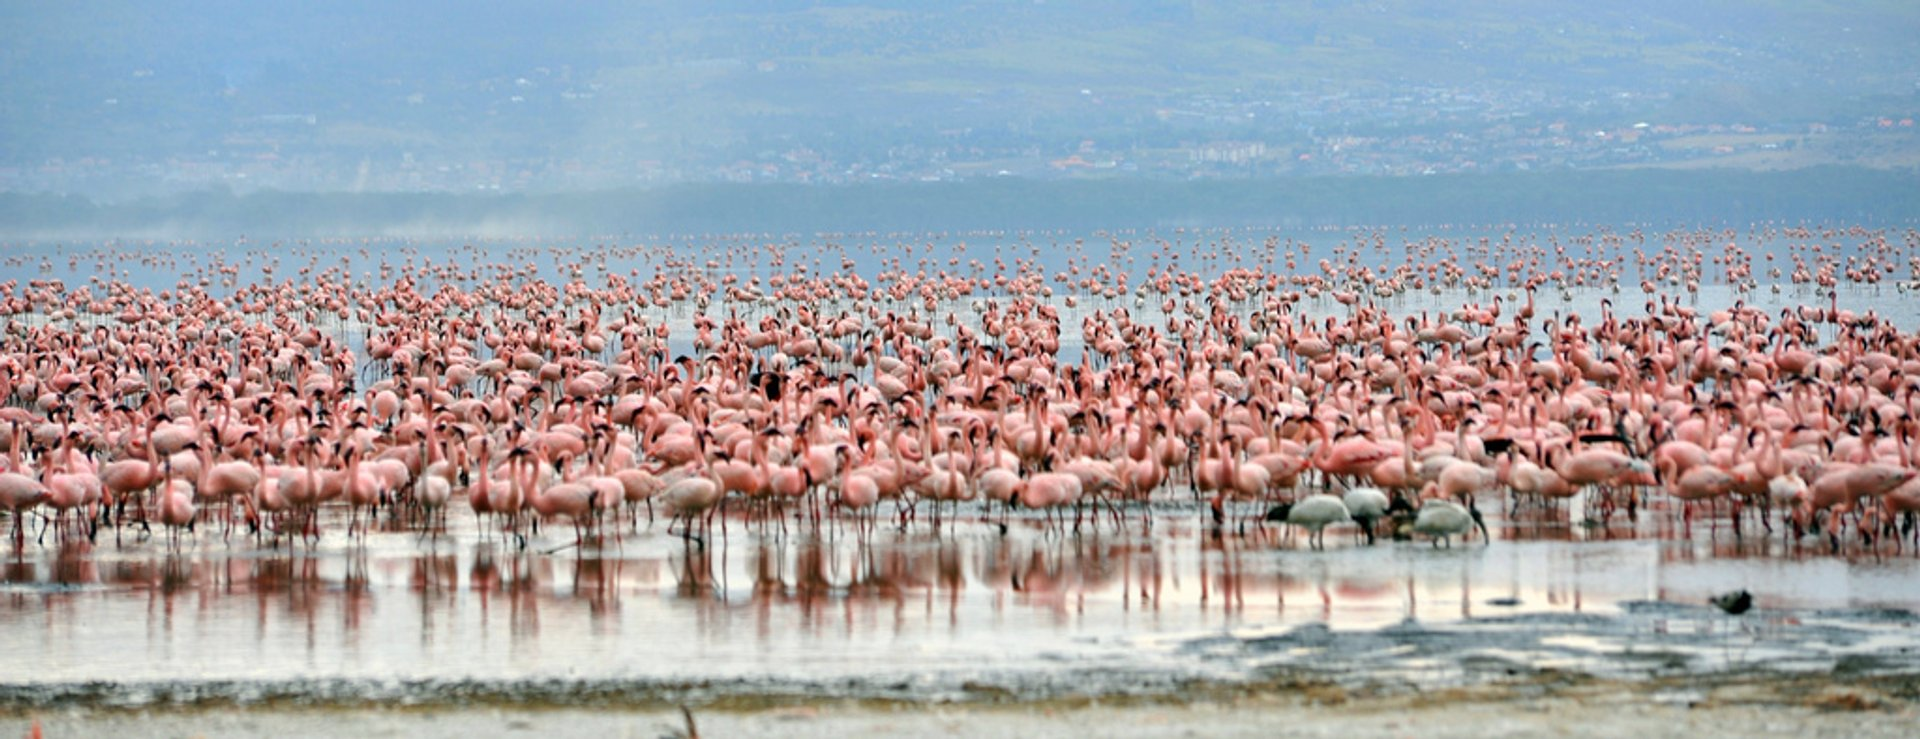 Over 1 million flamingoes in the park literally turn the shores of Lake Nakuru 2019